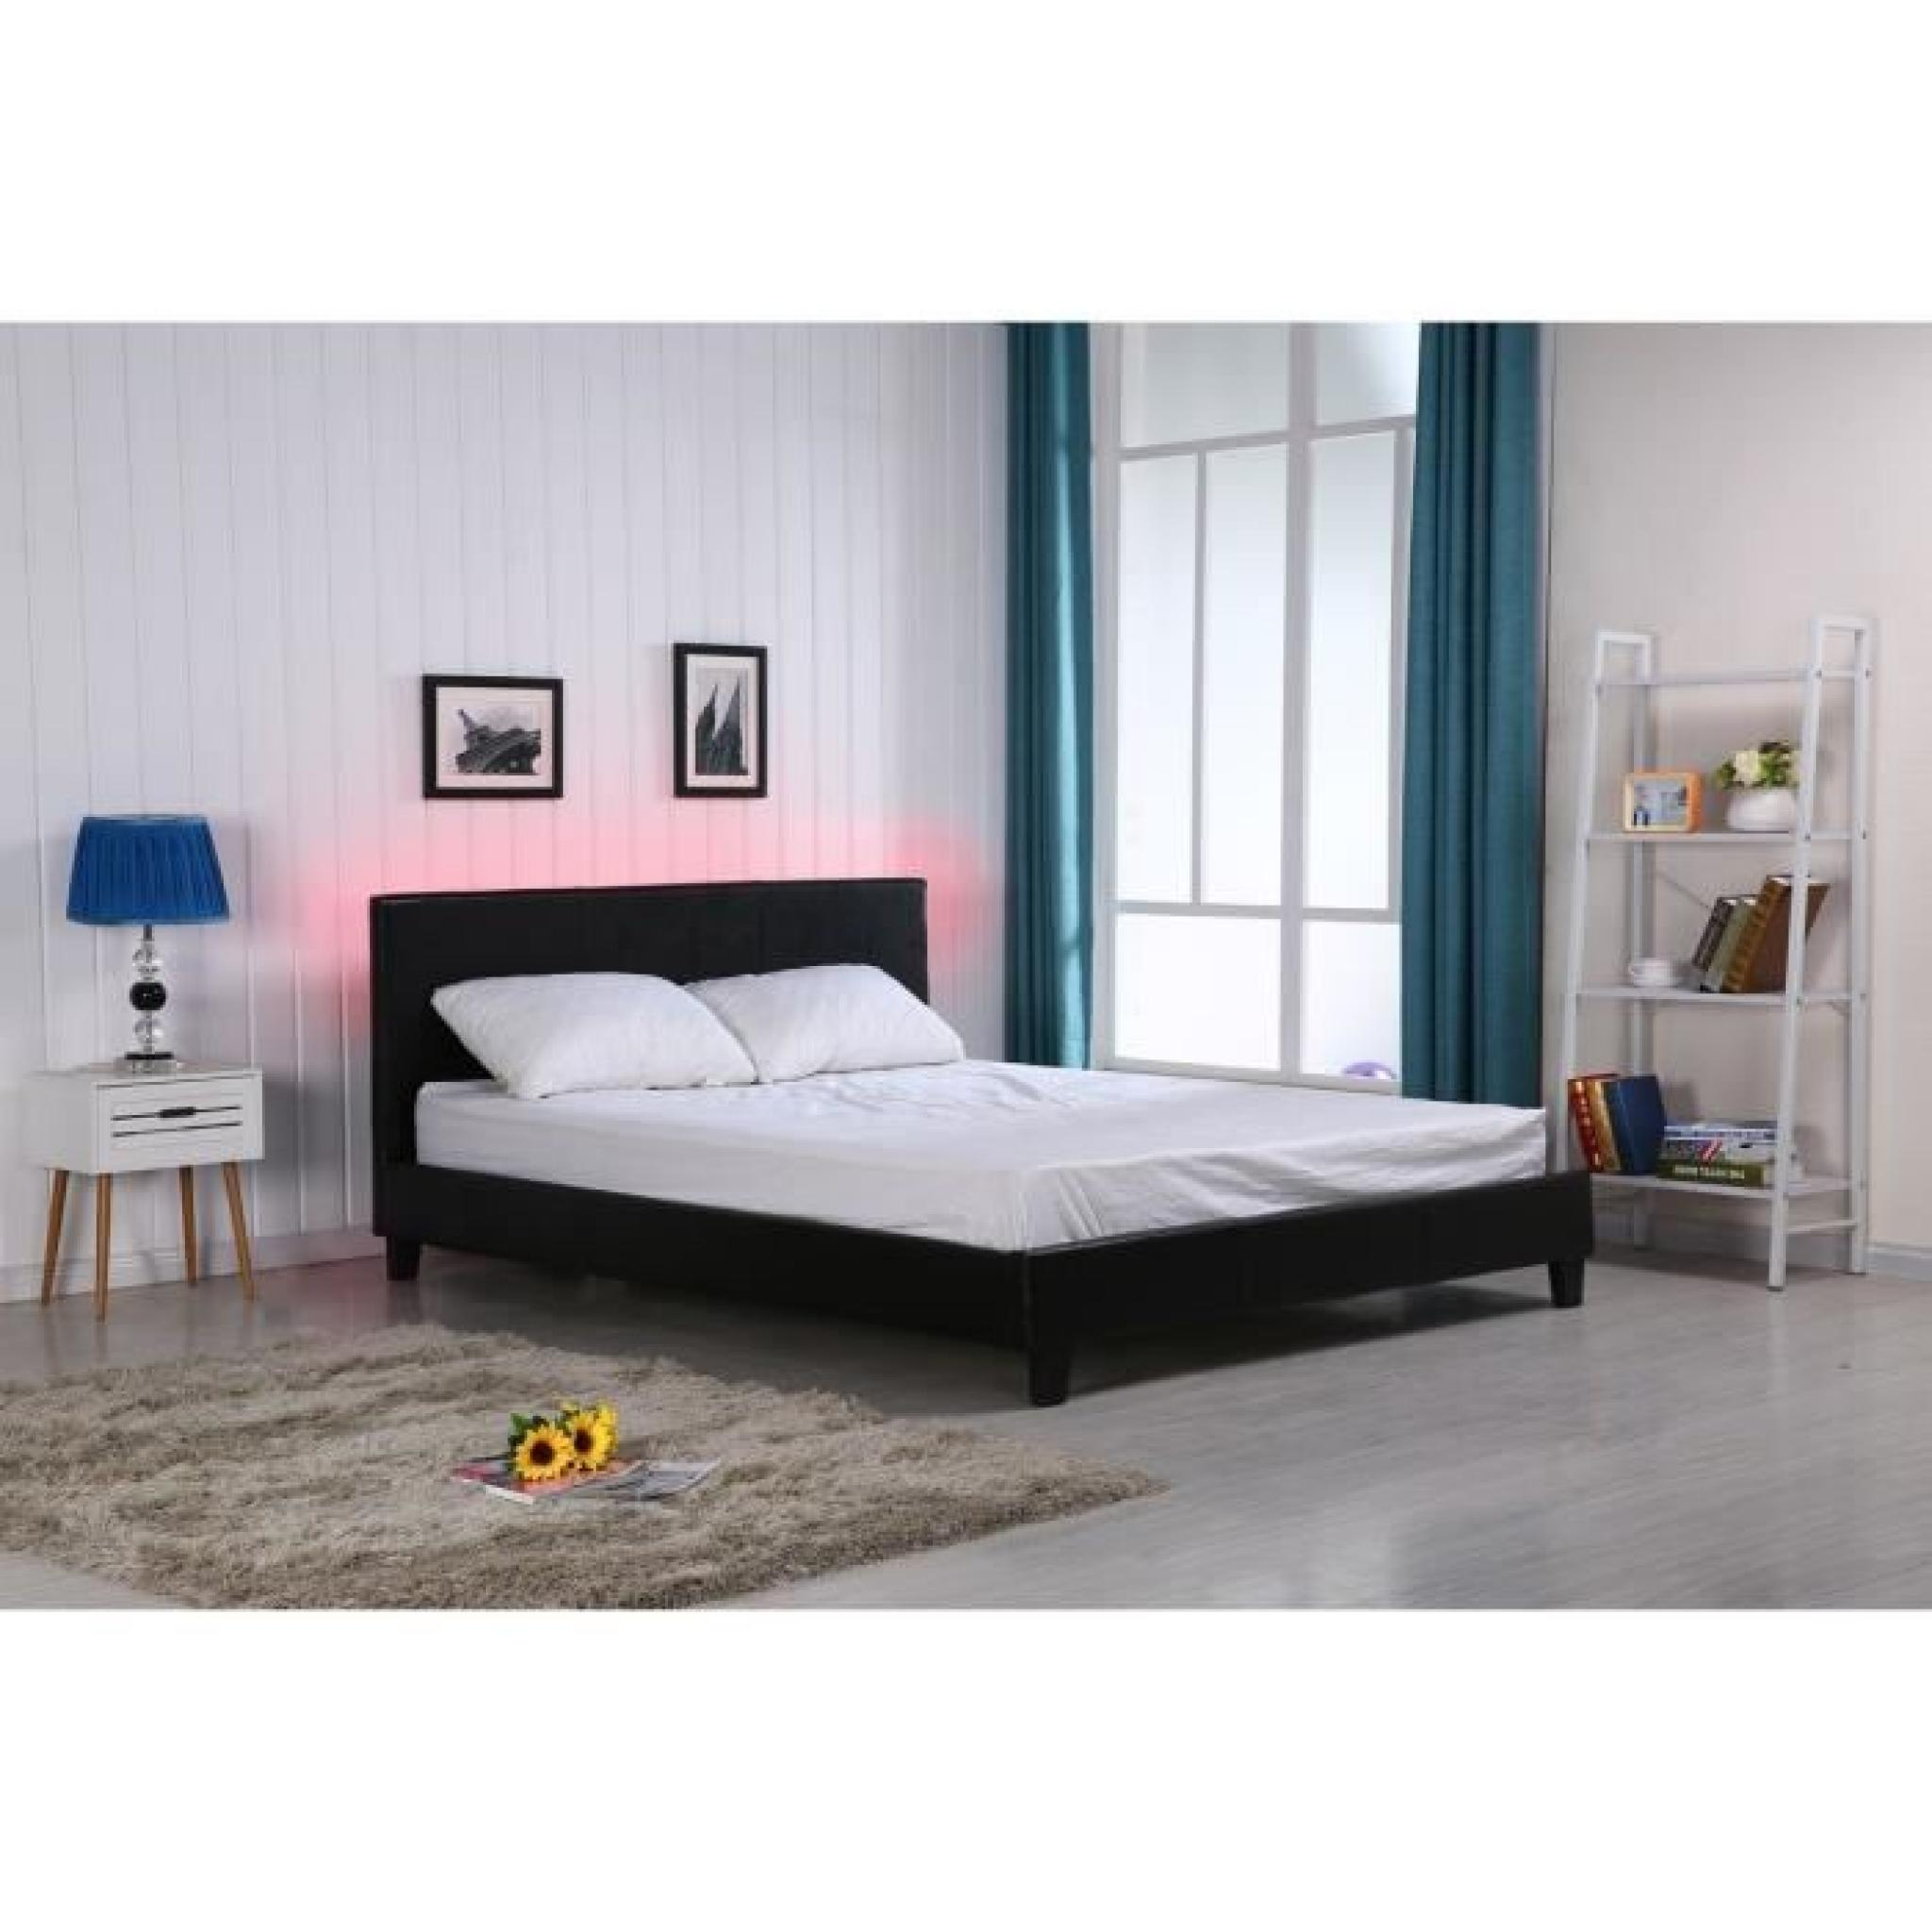 vegas lit led adulte noir 160x200cm sommier t te de lit avec clairage led achat vente lit. Black Bedroom Furniture Sets. Home Design Ideas